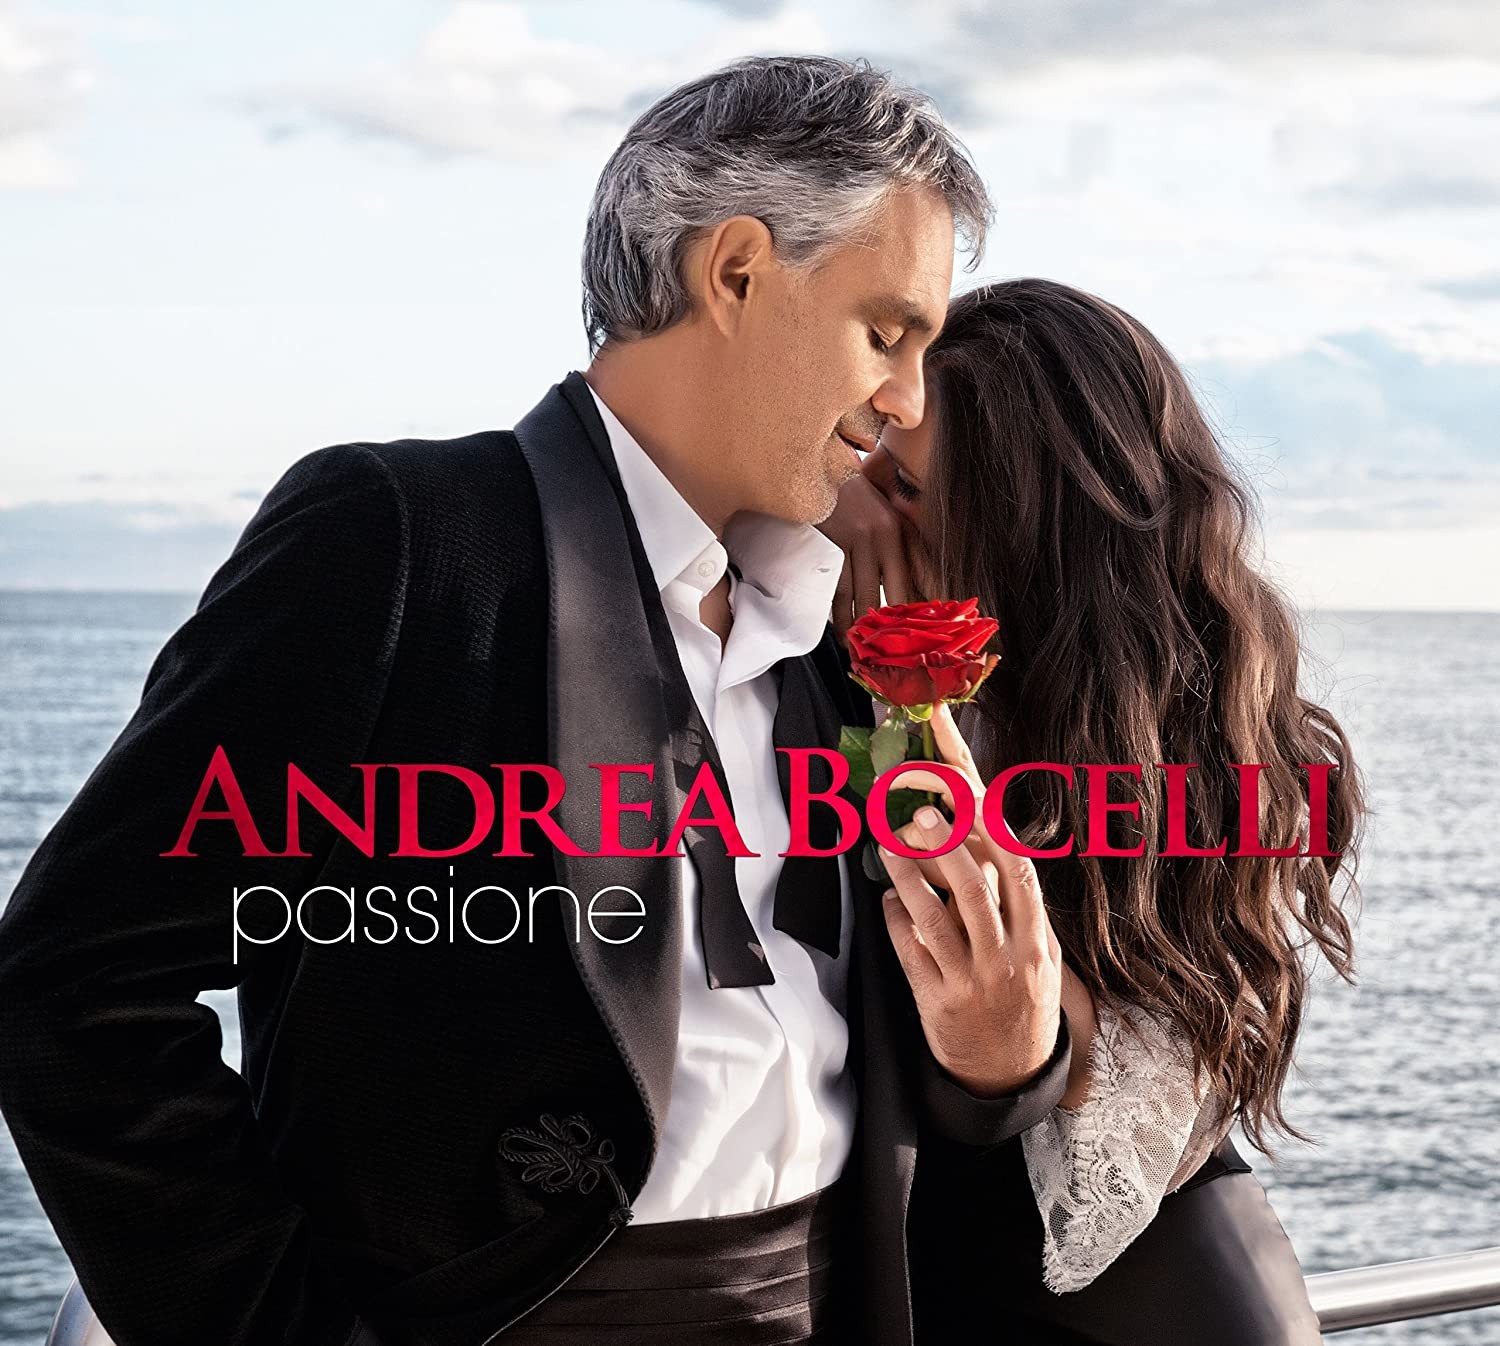 from Wikipedia: https://en.wikipedia.org/wiki/Passione_(Andrea_Bocelli_album)